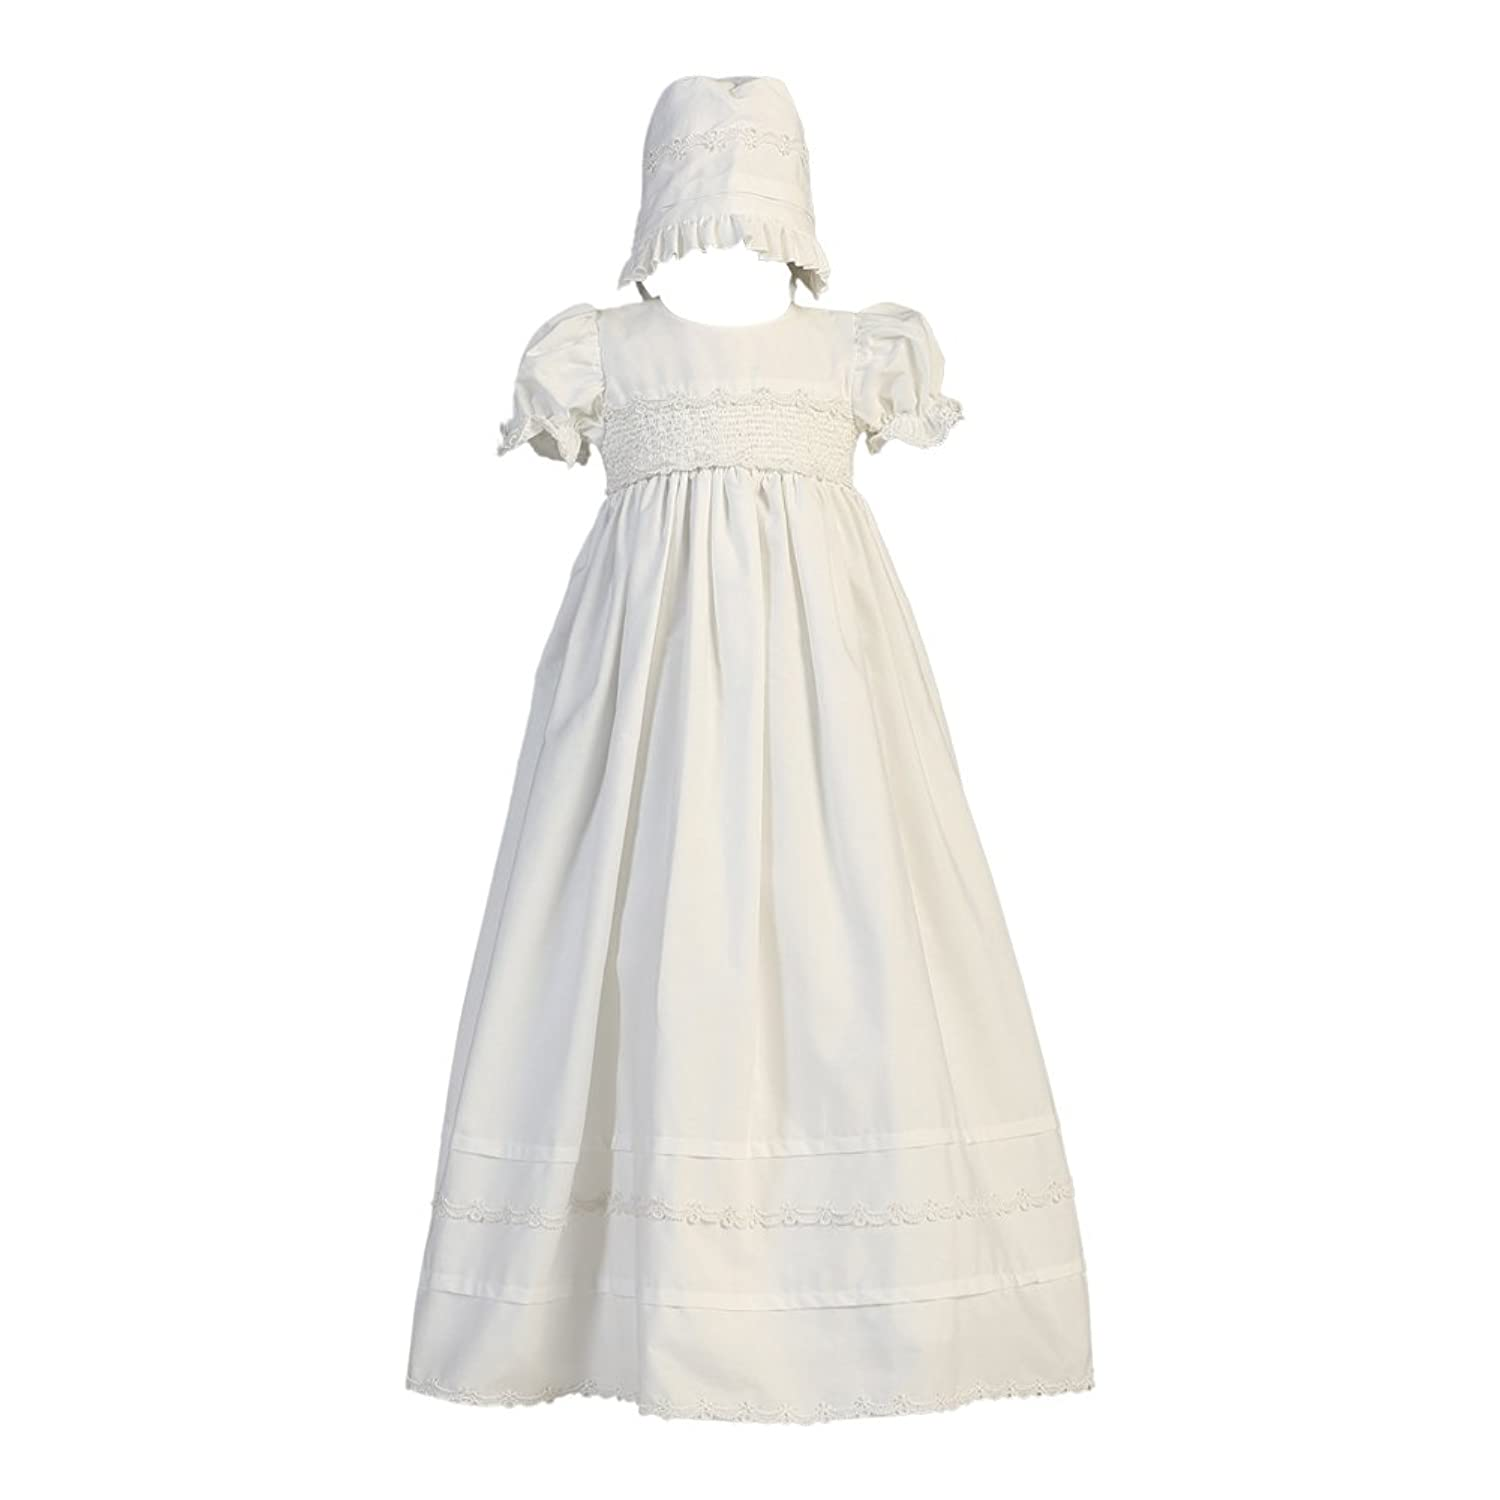 ae16c5455a A gorgeous embroidered Marie Christening baptism dress set from Lito White  shiny cotton dress features short sleeves with gathered elastic design